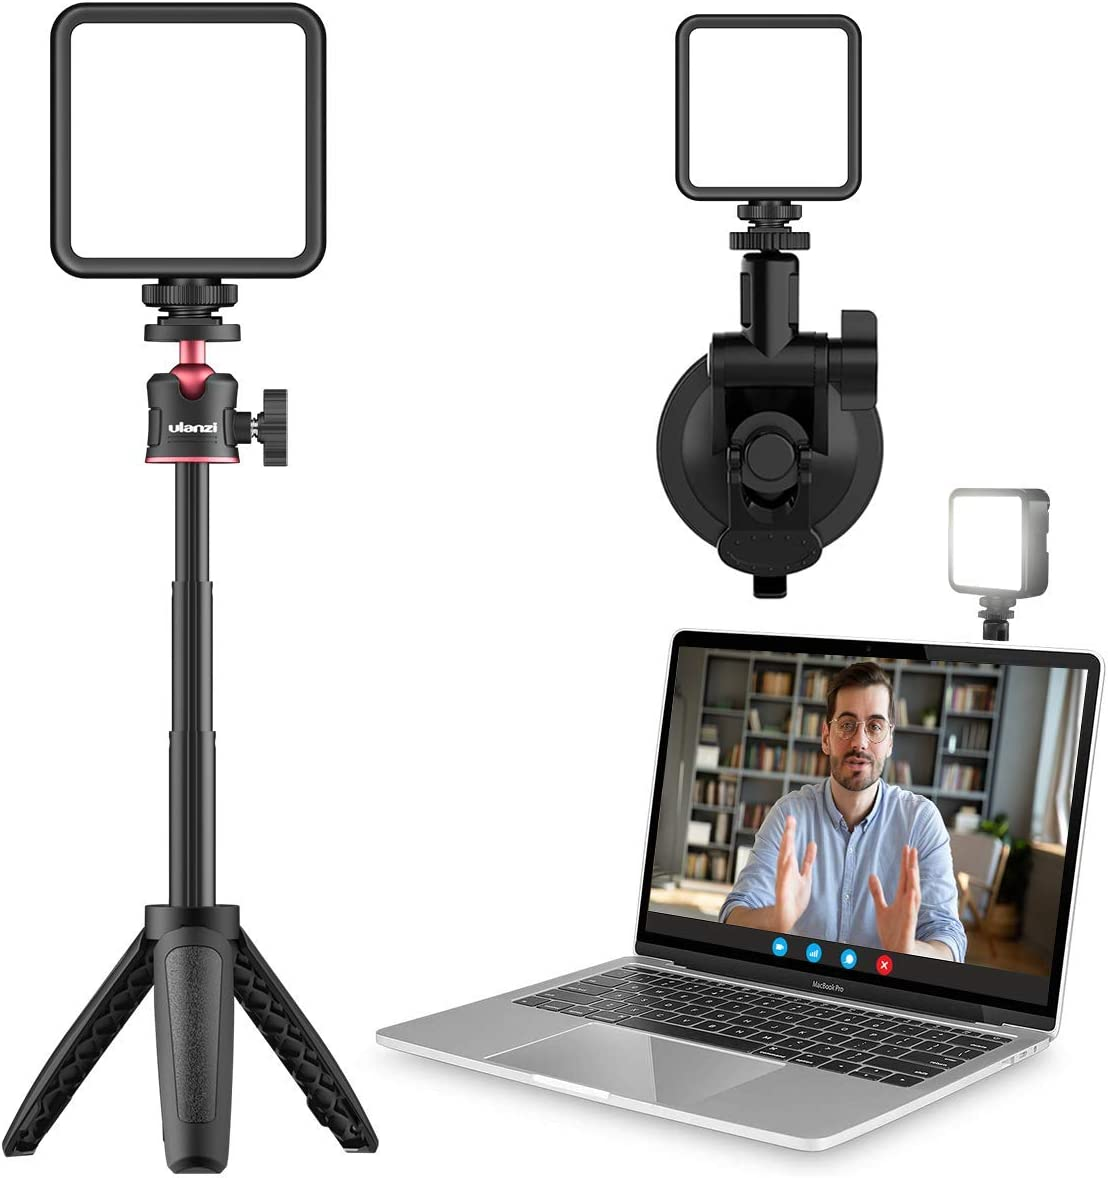 Video Light with Tripod & Suction Cup ULNAZI Computer Light for Video Conferencing, Laptop Video Conference Lighting for Remote Working, Zoom Call, Self Broadcasting,Online Meeting, Photography